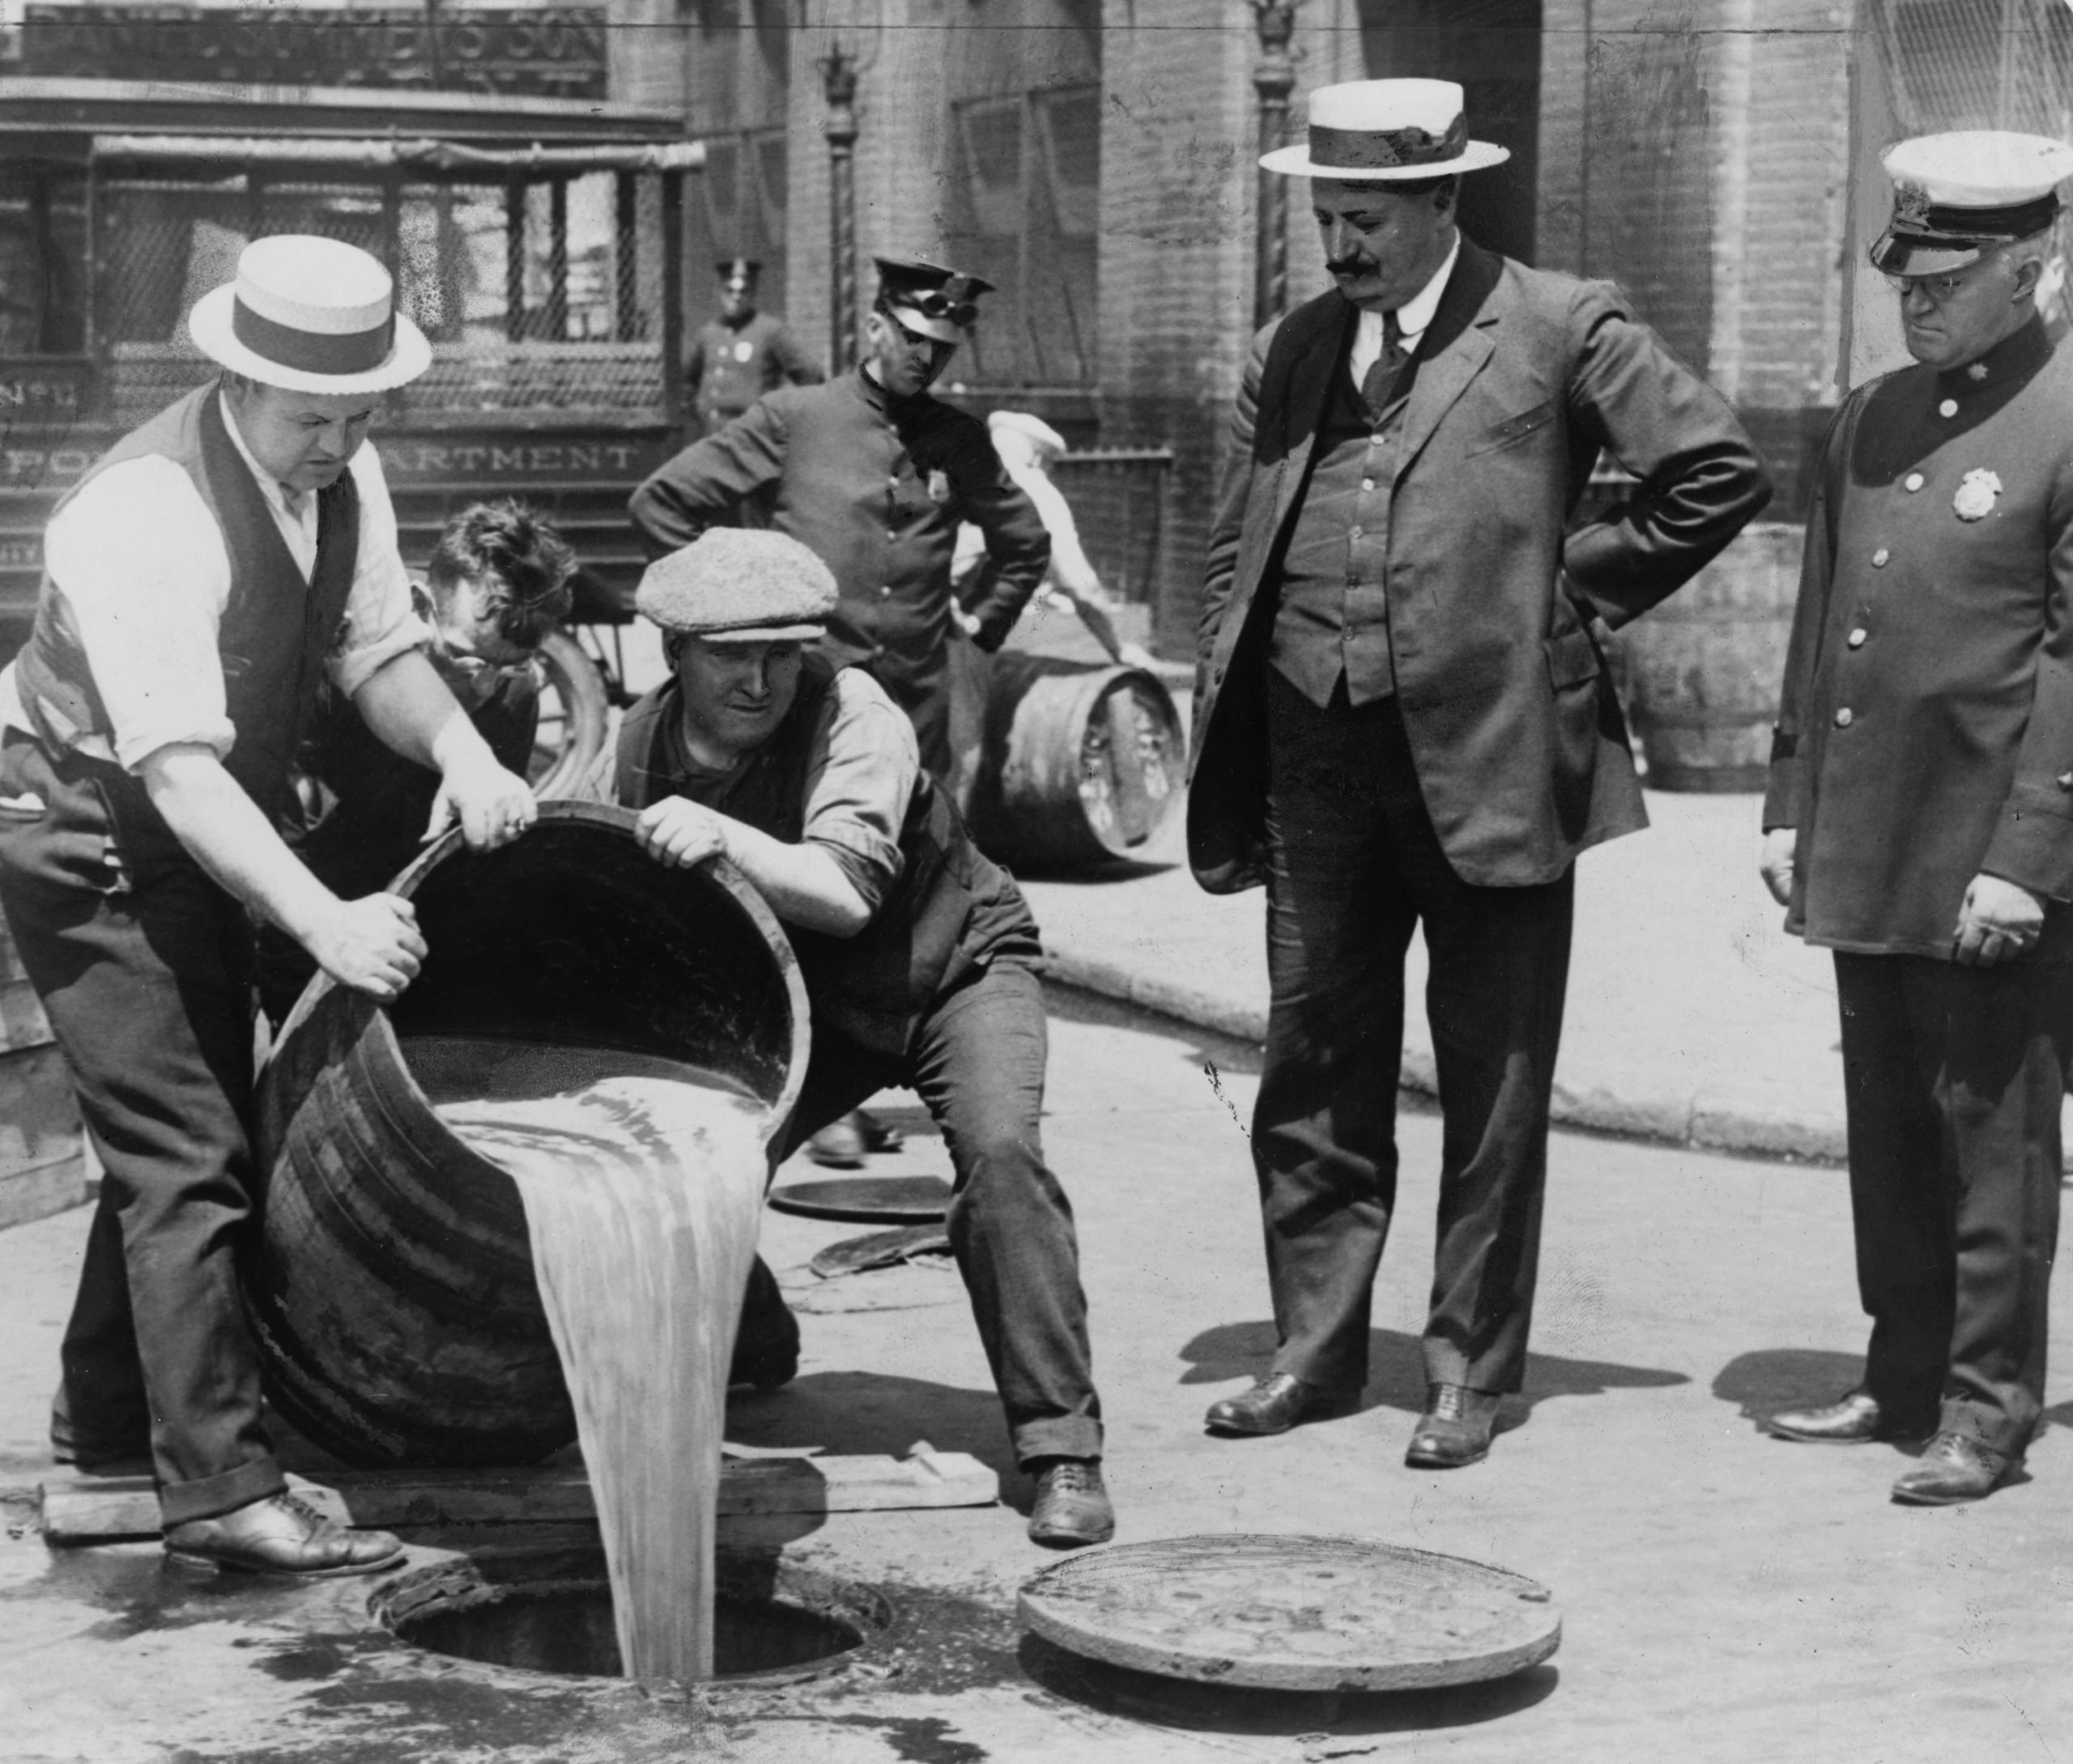 Pouring out illegal alcohol into a Sewer